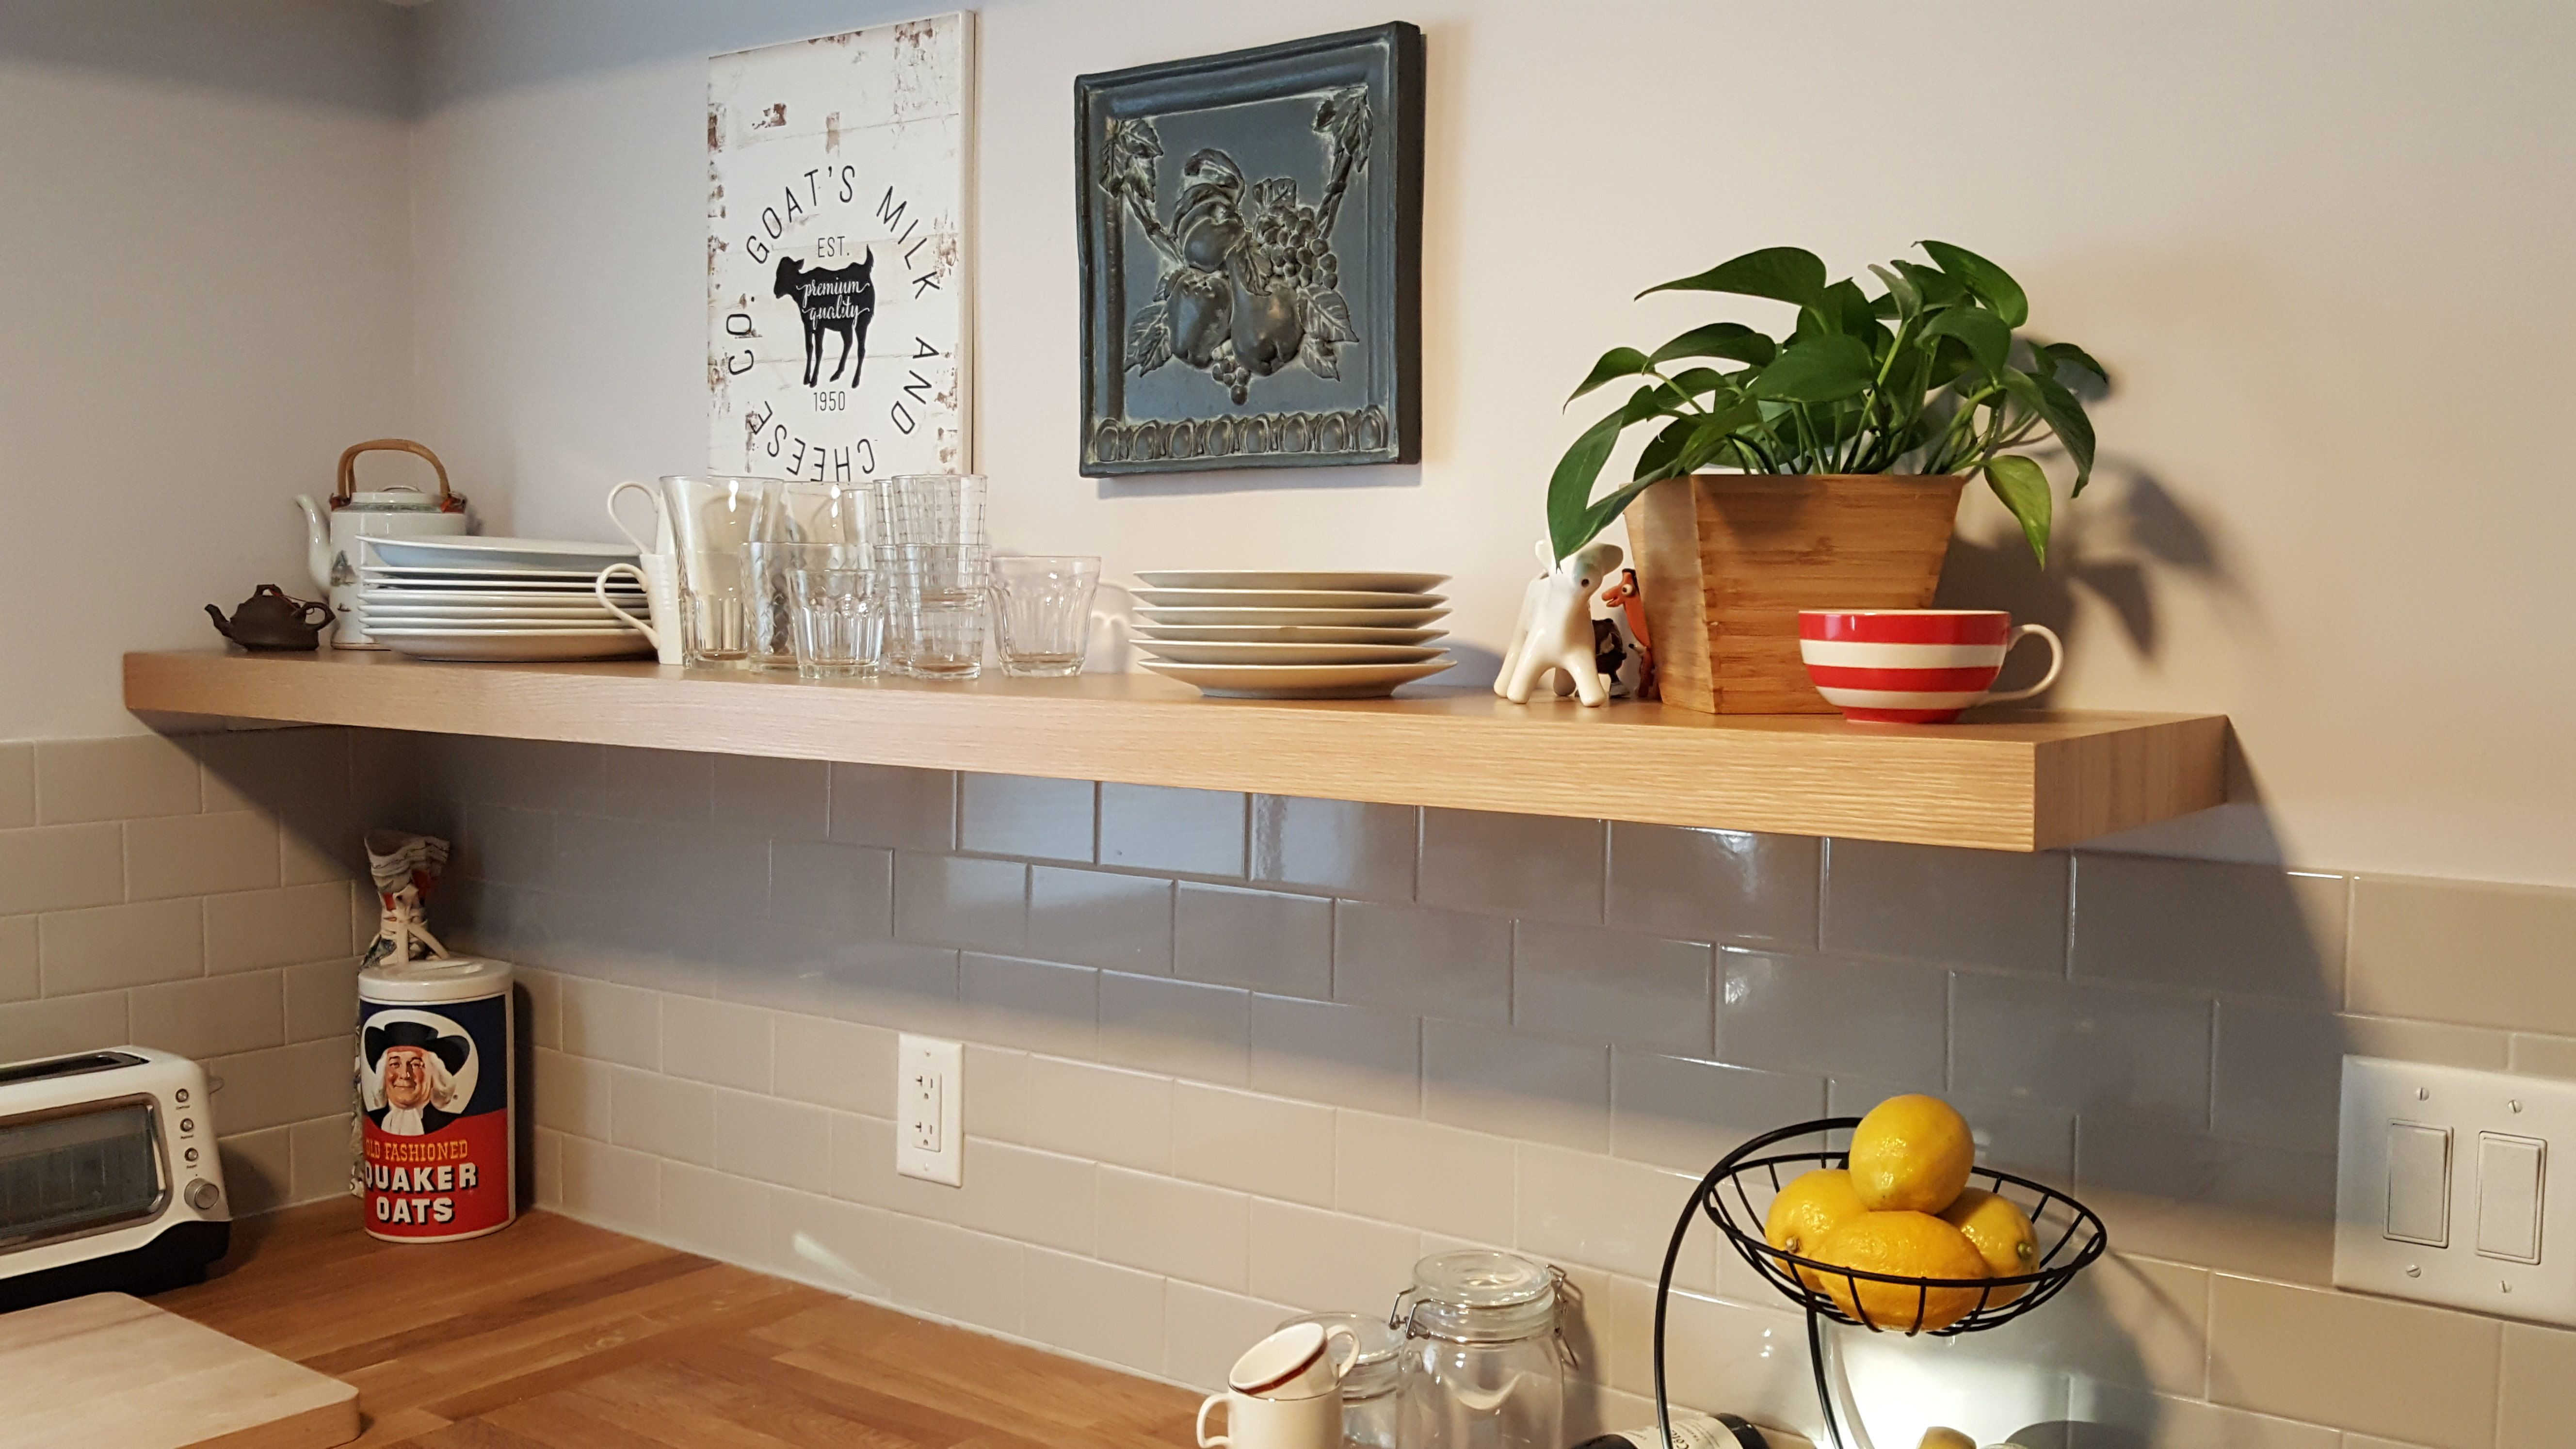 Here Is Our Customer, Steve, Kitchen Floating Shelf How Awesome